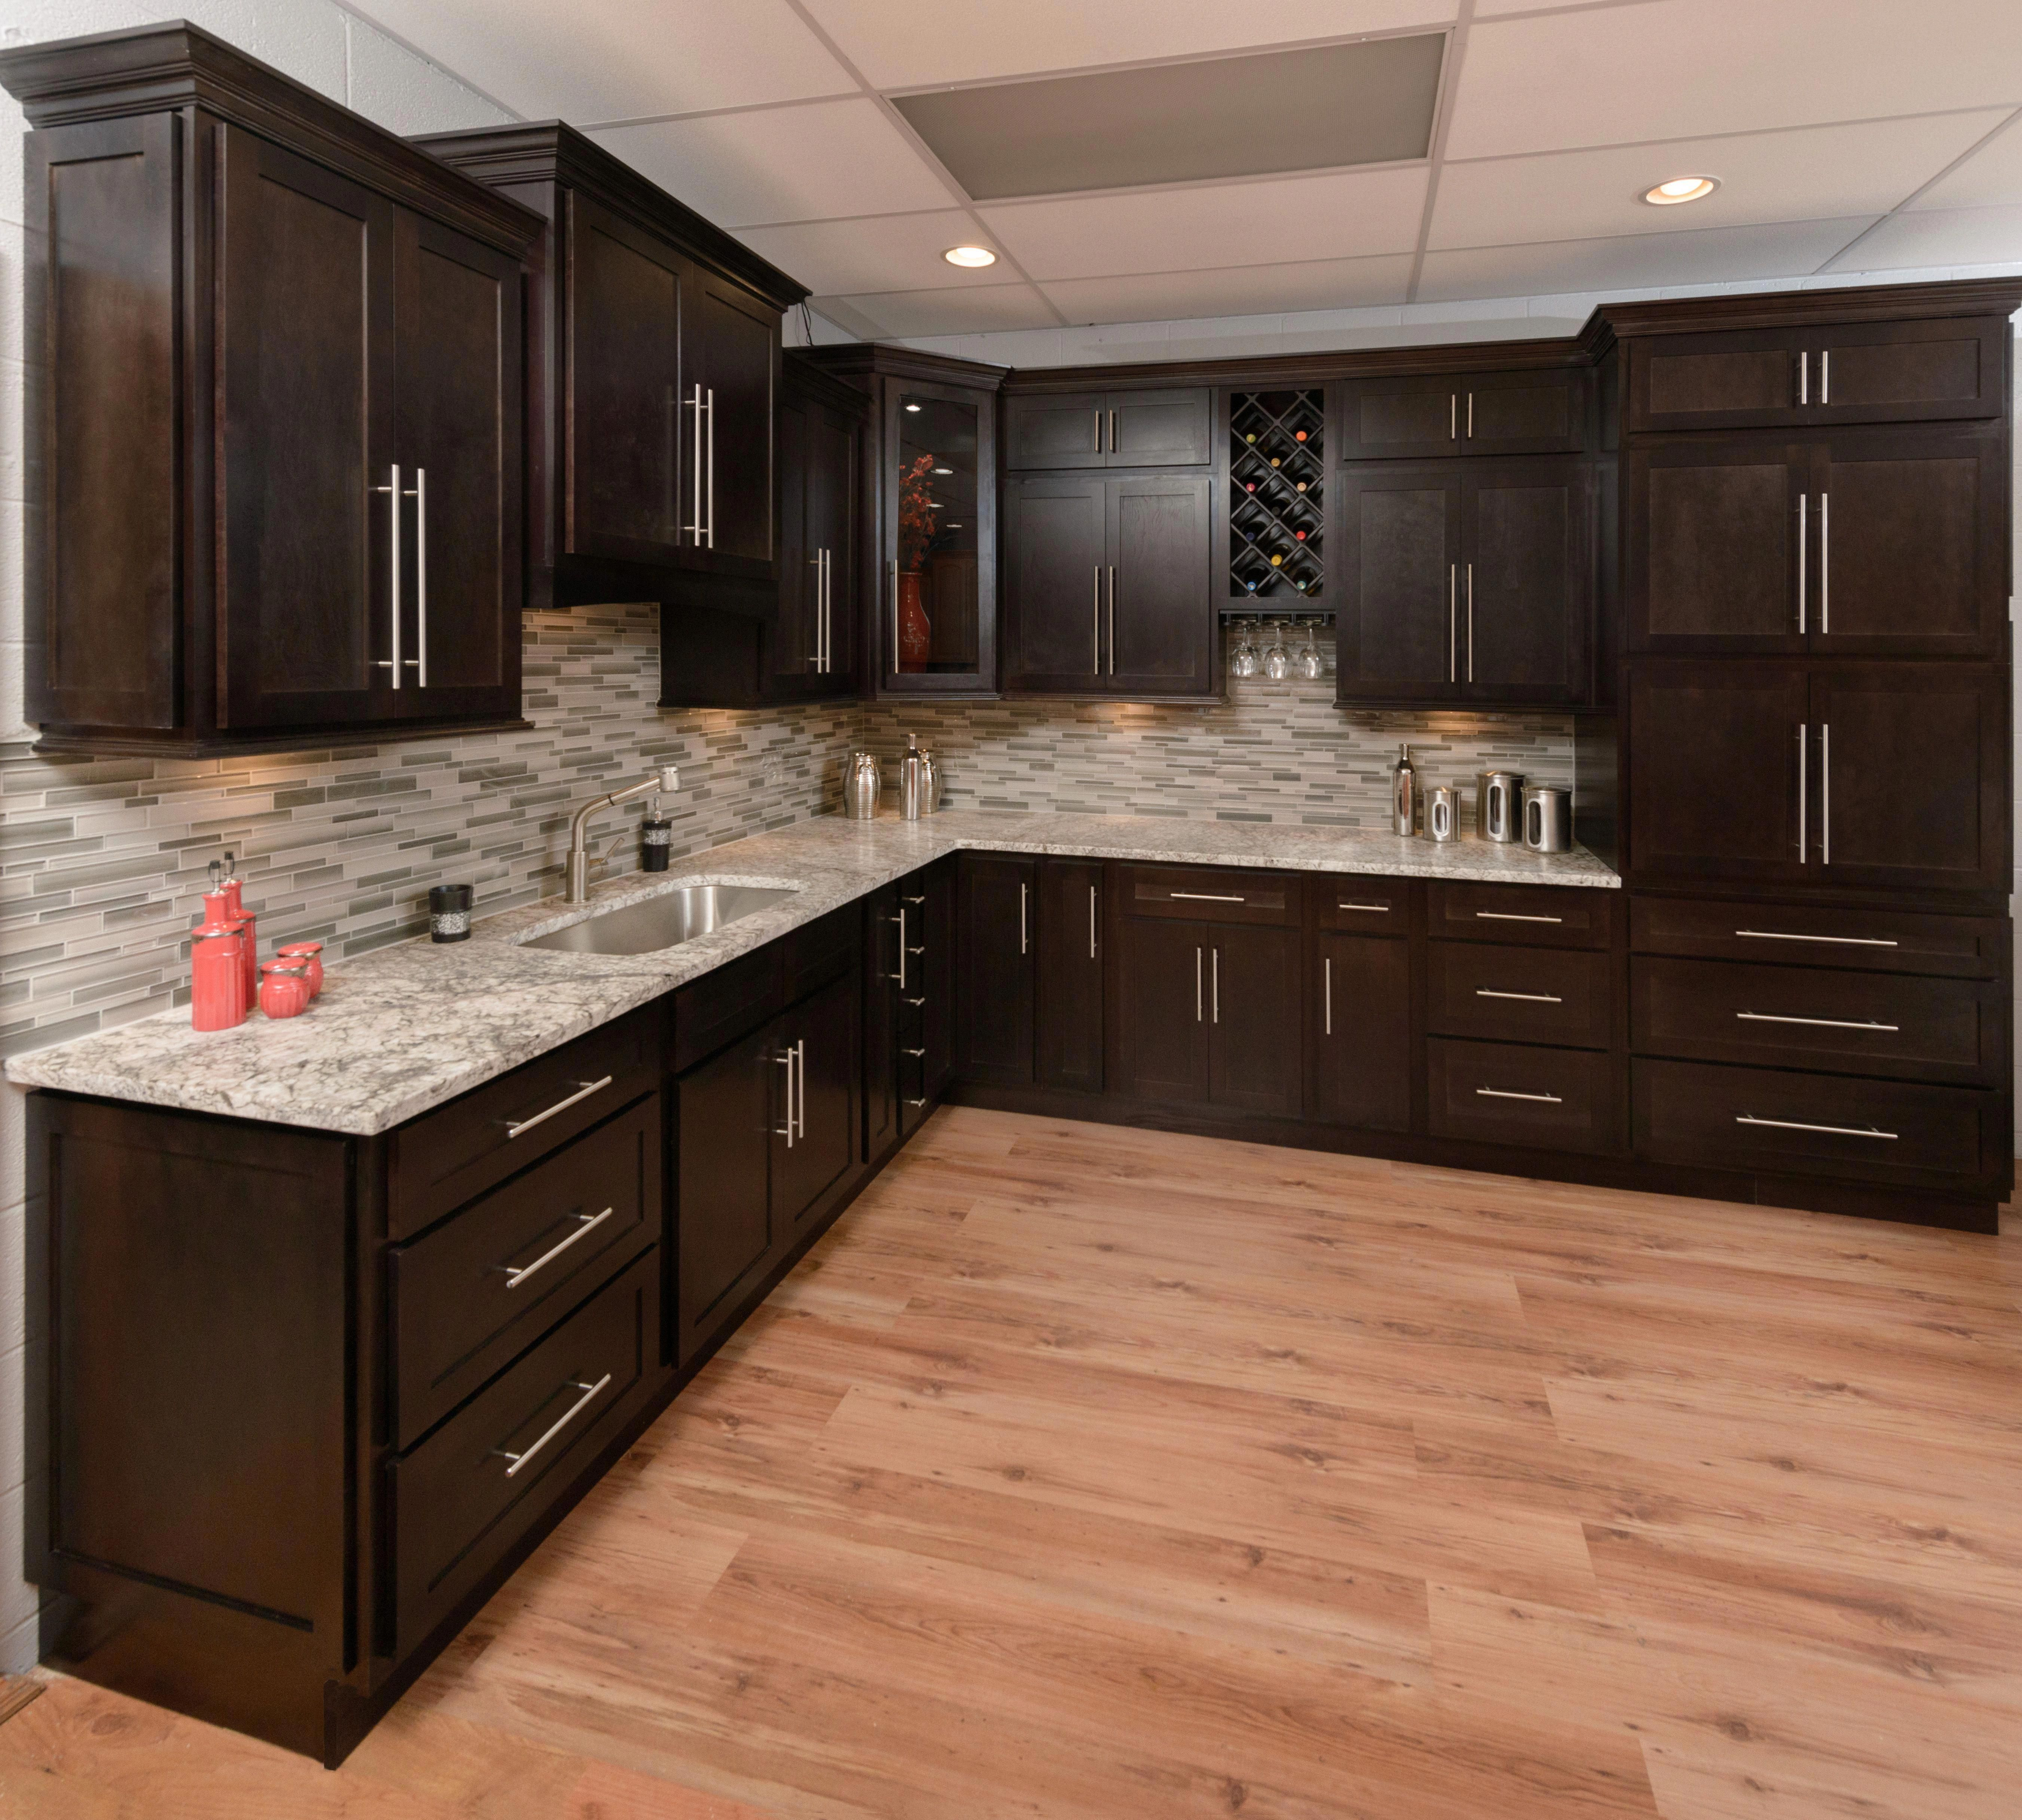 Cheapfurniturestoresonline In 2020 Shaker Kitchen Cabinets Kitchen Cabinet Design Brown Kitchen Cabinets